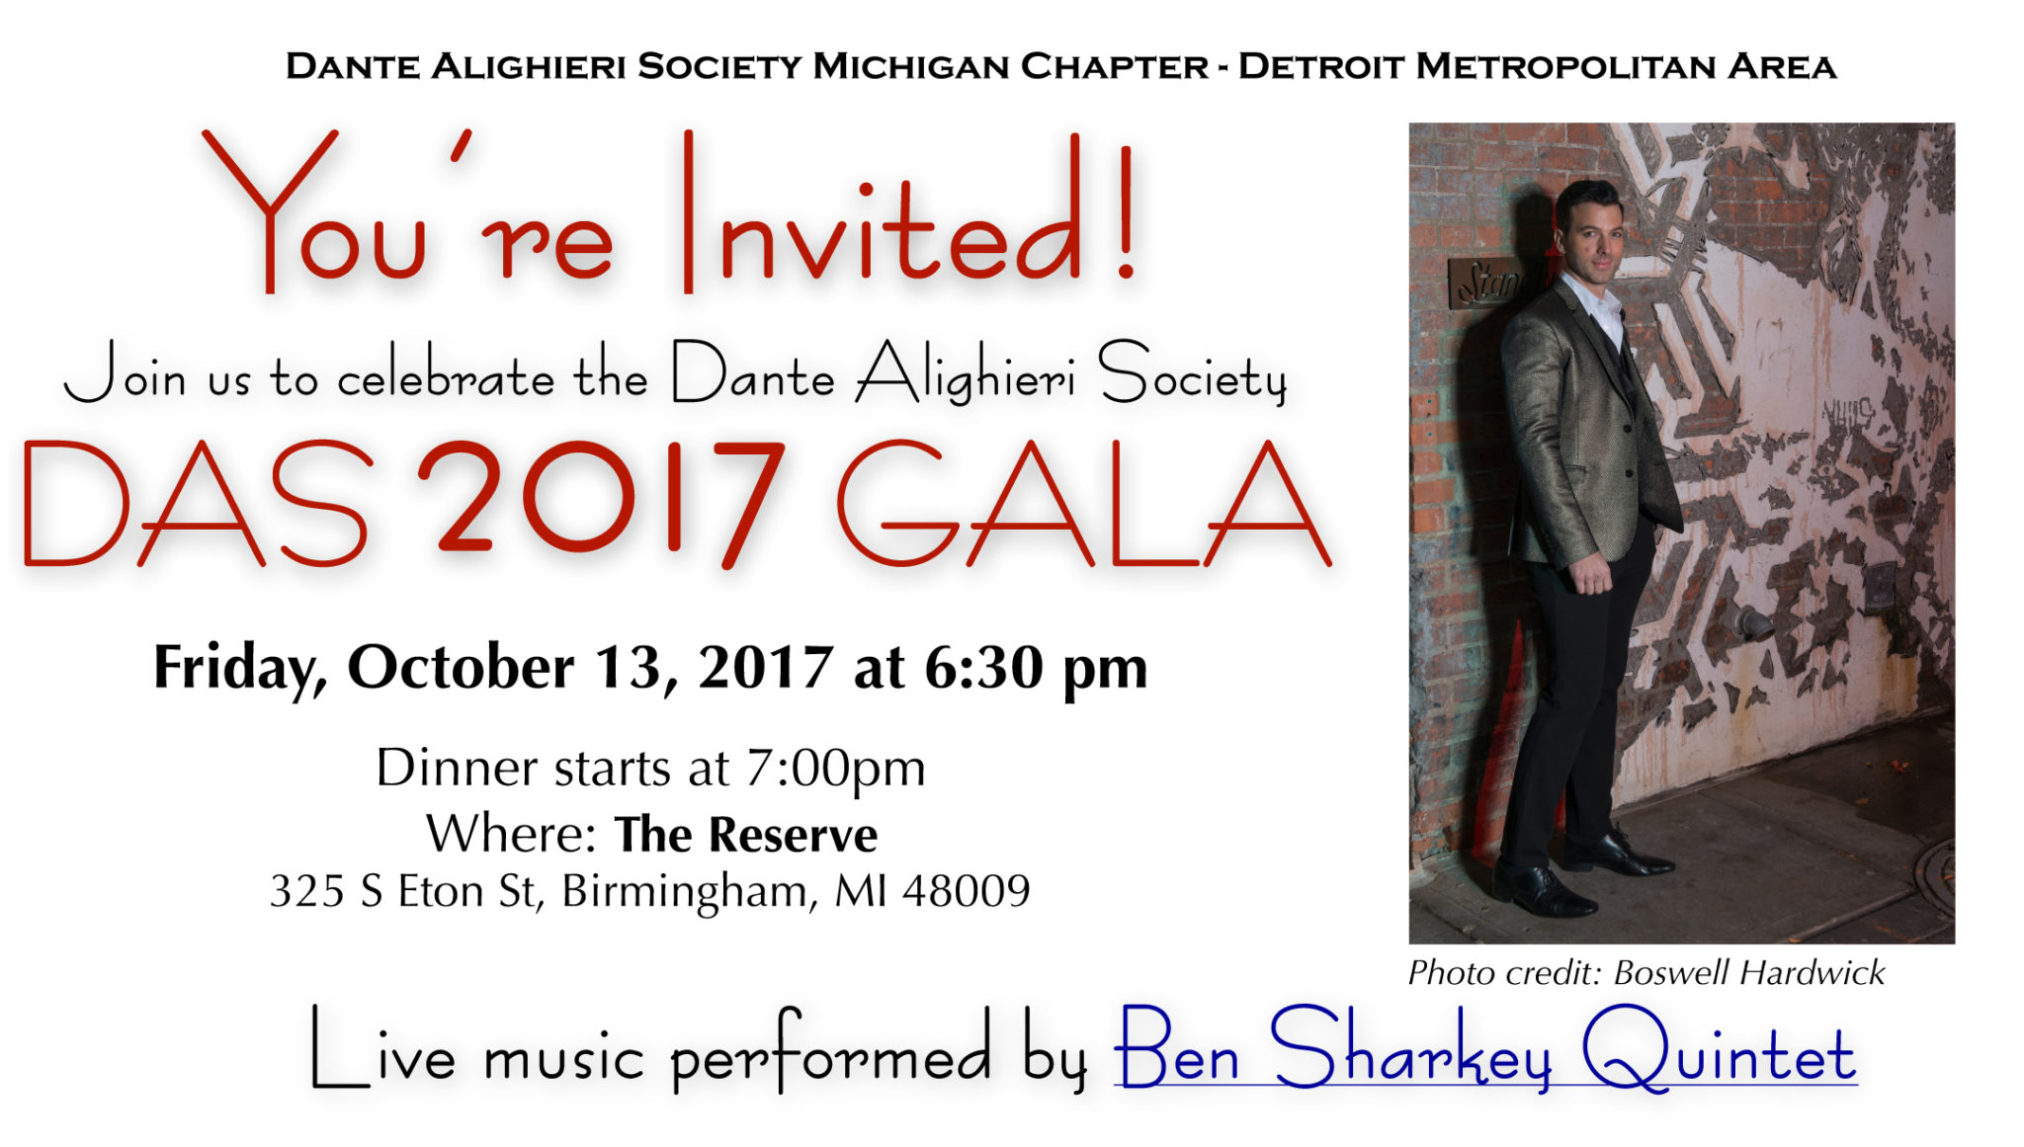 DAS ANNUAL GALA  AND MEMBERS' CELEBRATION